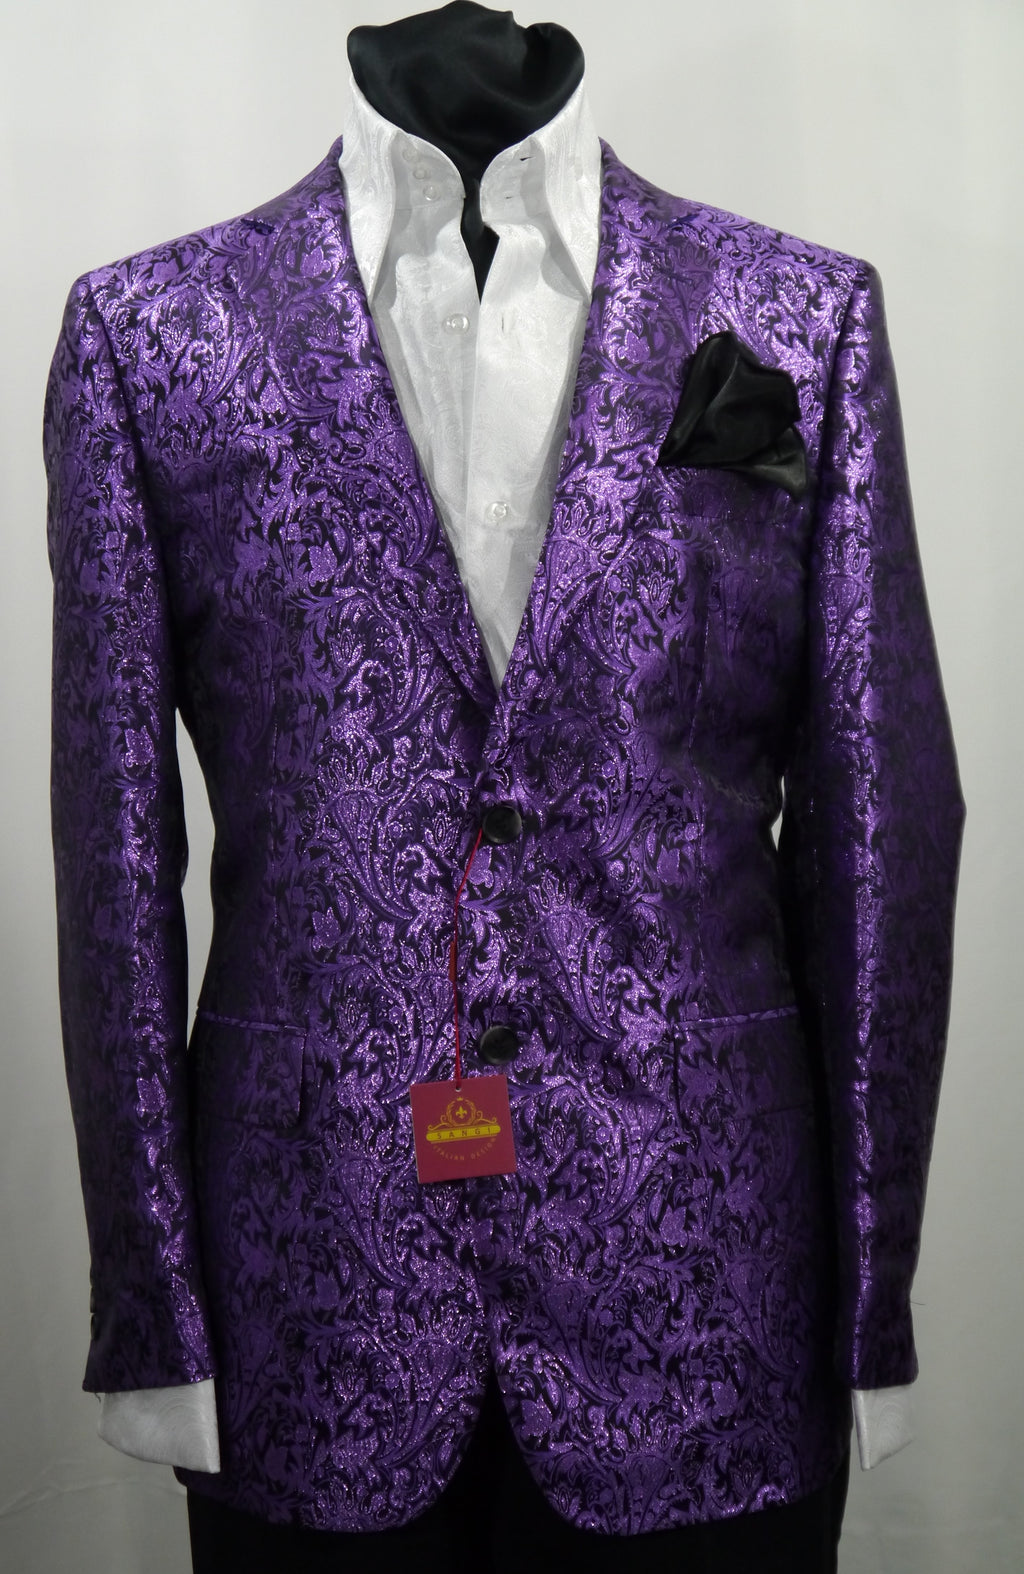 Mens Purple Shiny Foil Ivy Paisley Jacket Blazer SANGI MILAN COLLECTION J1034 S